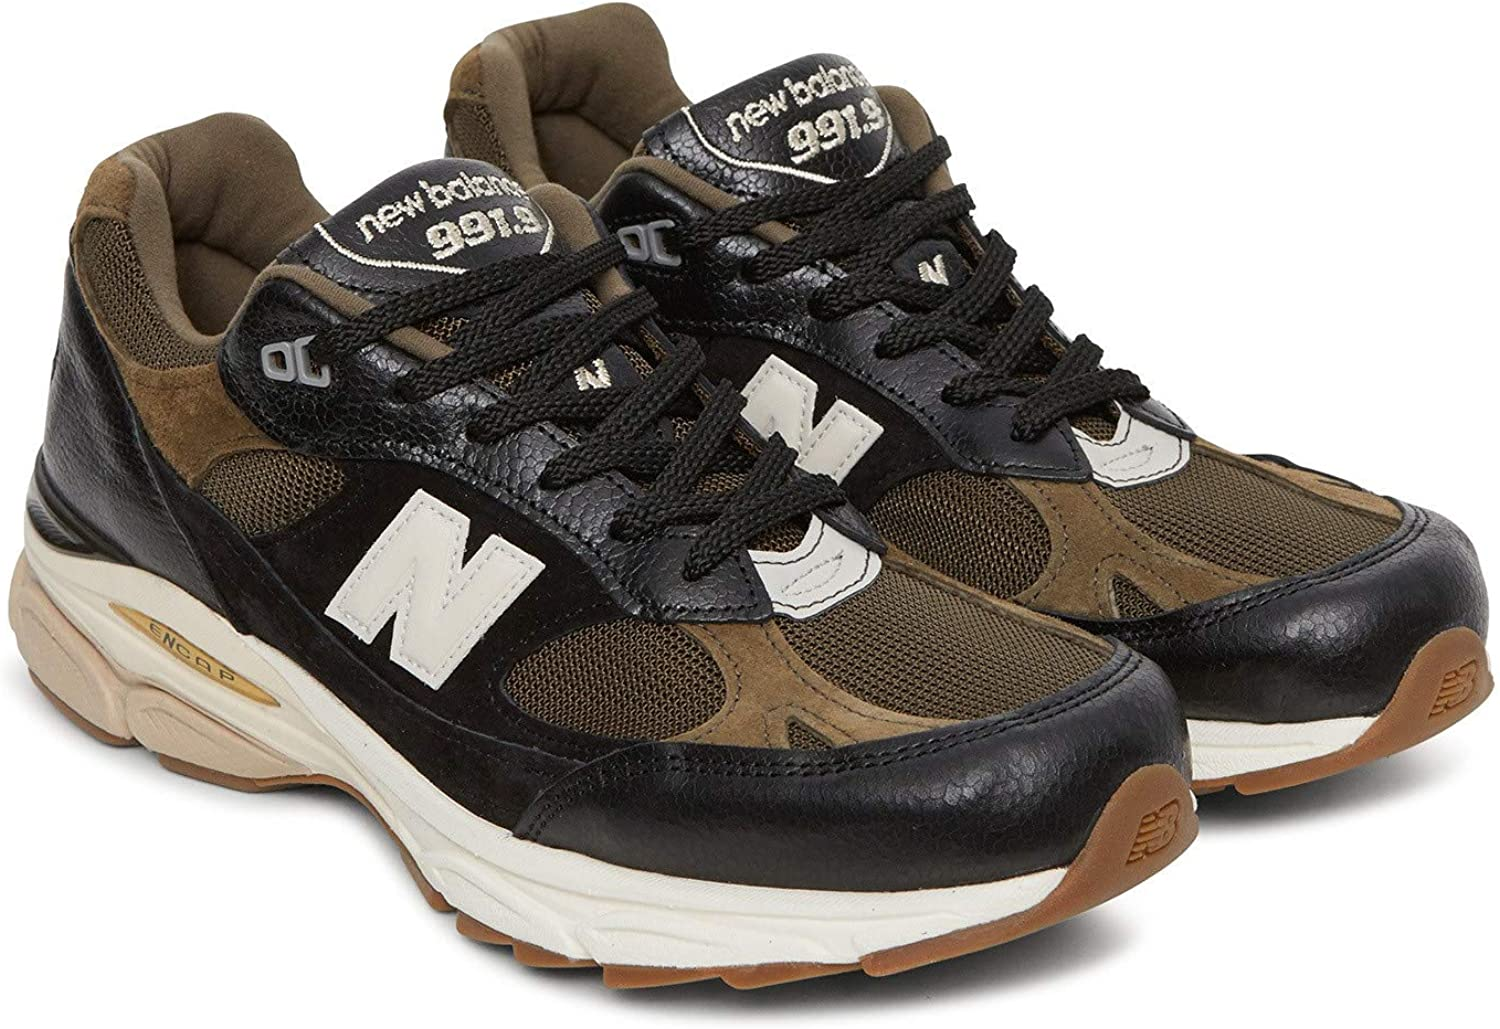 New Balance M9919 D Leather Textile Pu - cv schwarz, Gre 9.5(43)